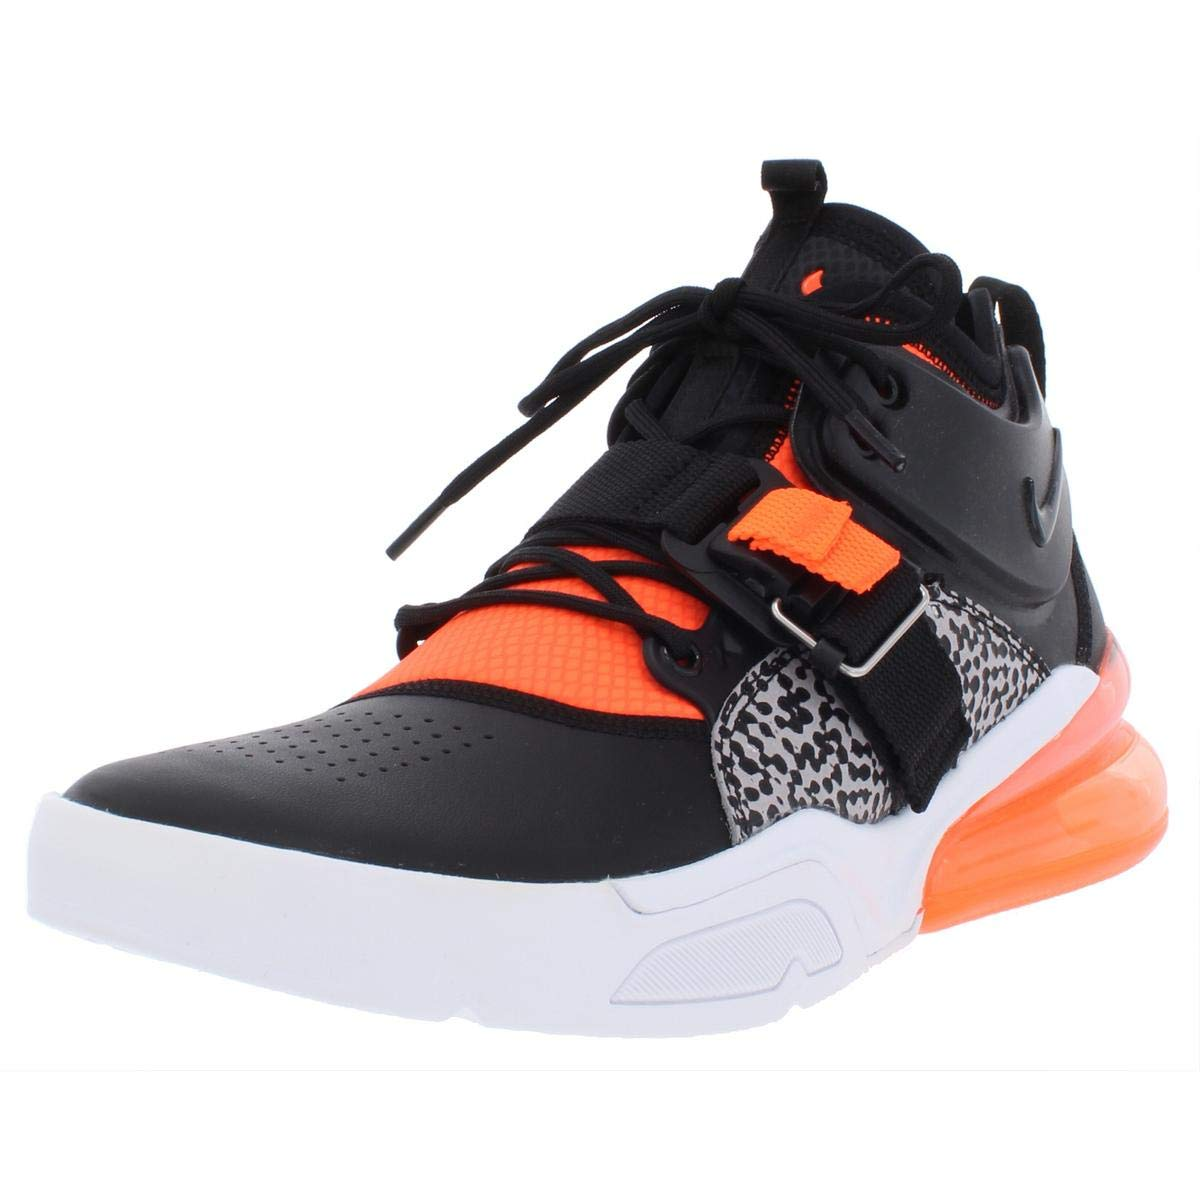 5c5d92655fc Galleon - Nike Mens Air Force 270 Leather Off-Court Basketball Shoes Black  9 Medium (D)